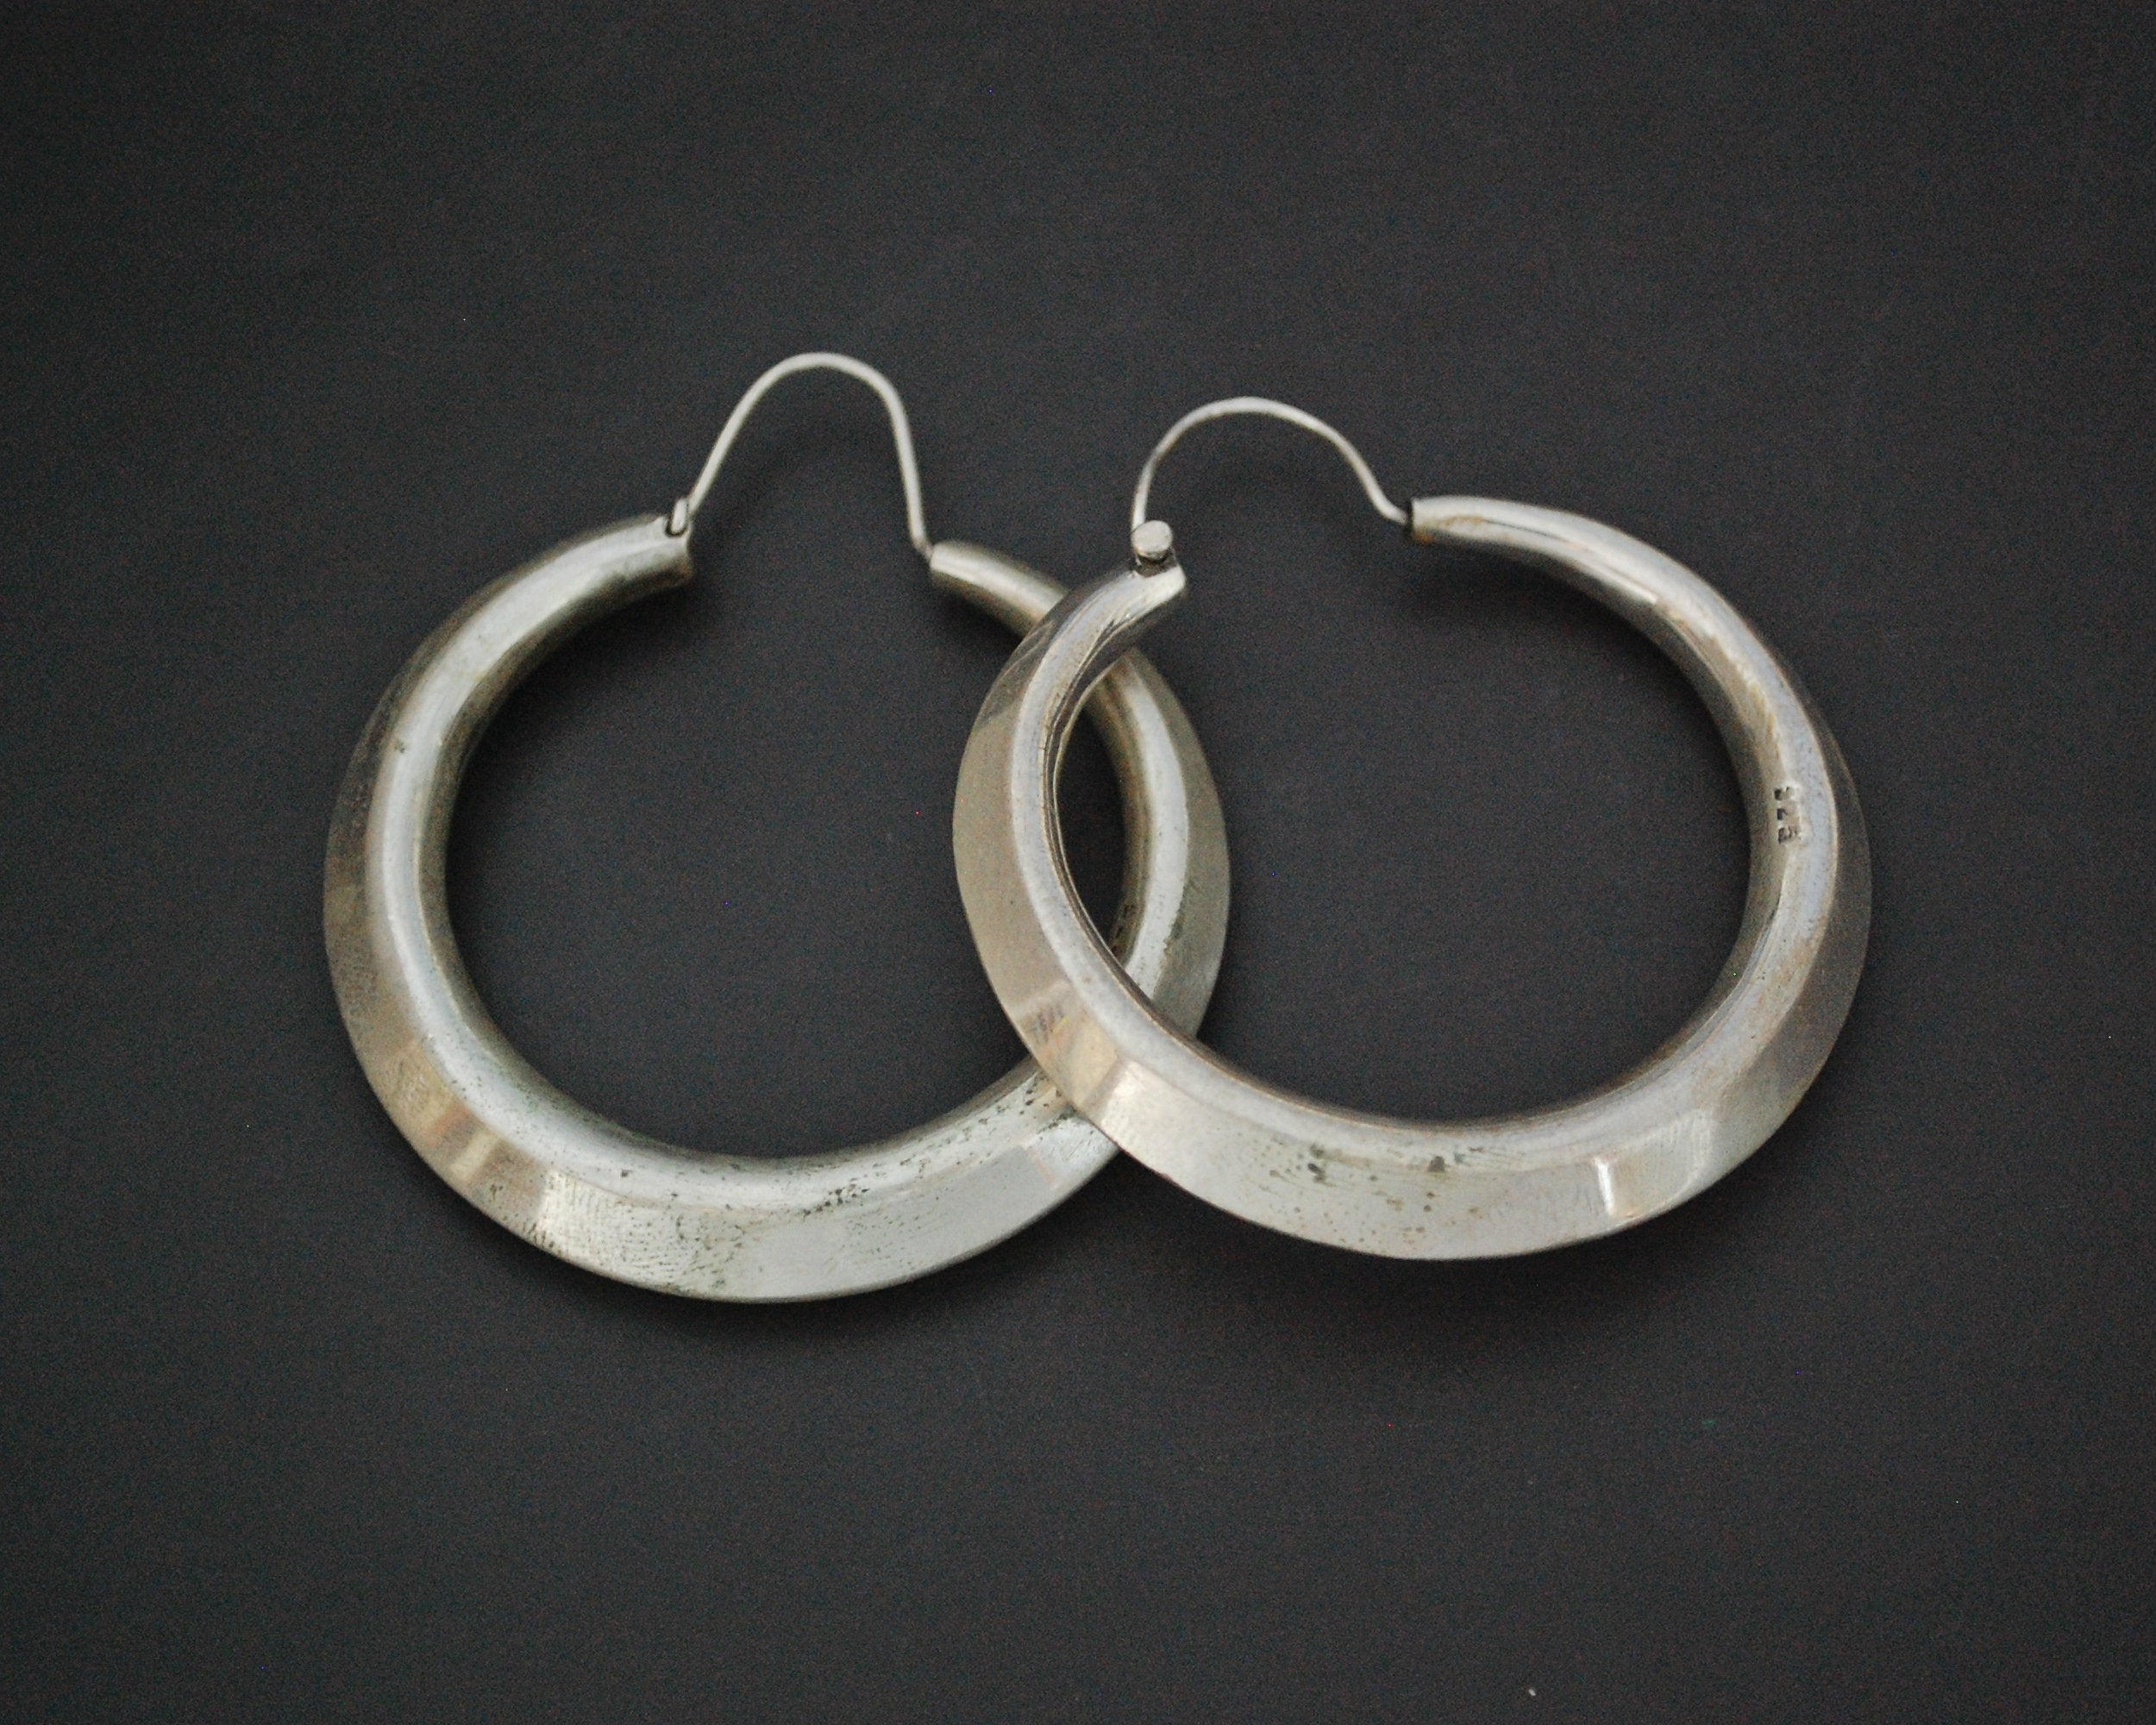 Huge Sterling Silver Hoop Earrings - XLARGE